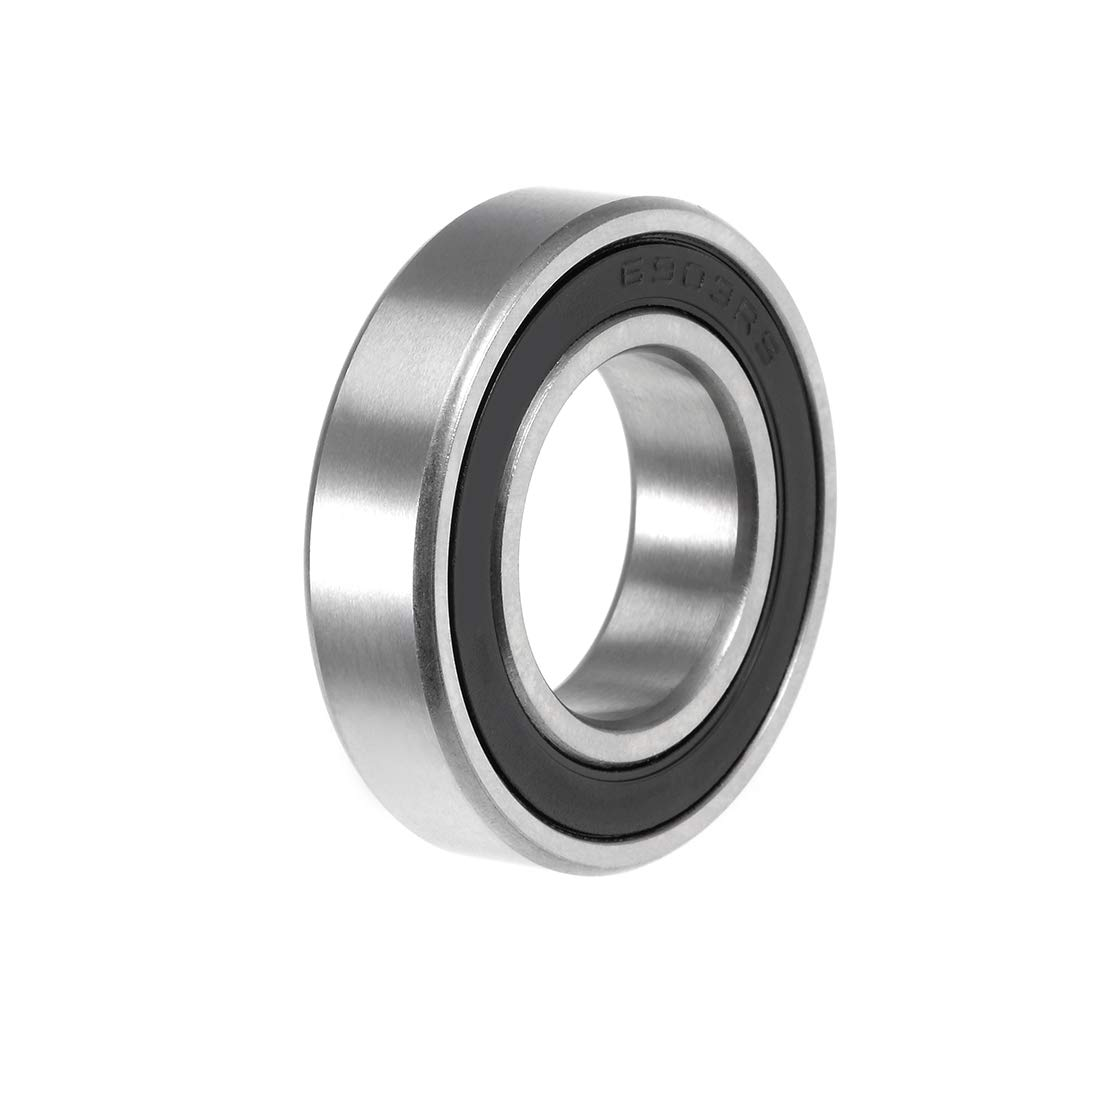 uxcell 6903-2RS Deep Groove Opening large release sale low-pricing Ball 17x30x7mm Sealed Double Bearing